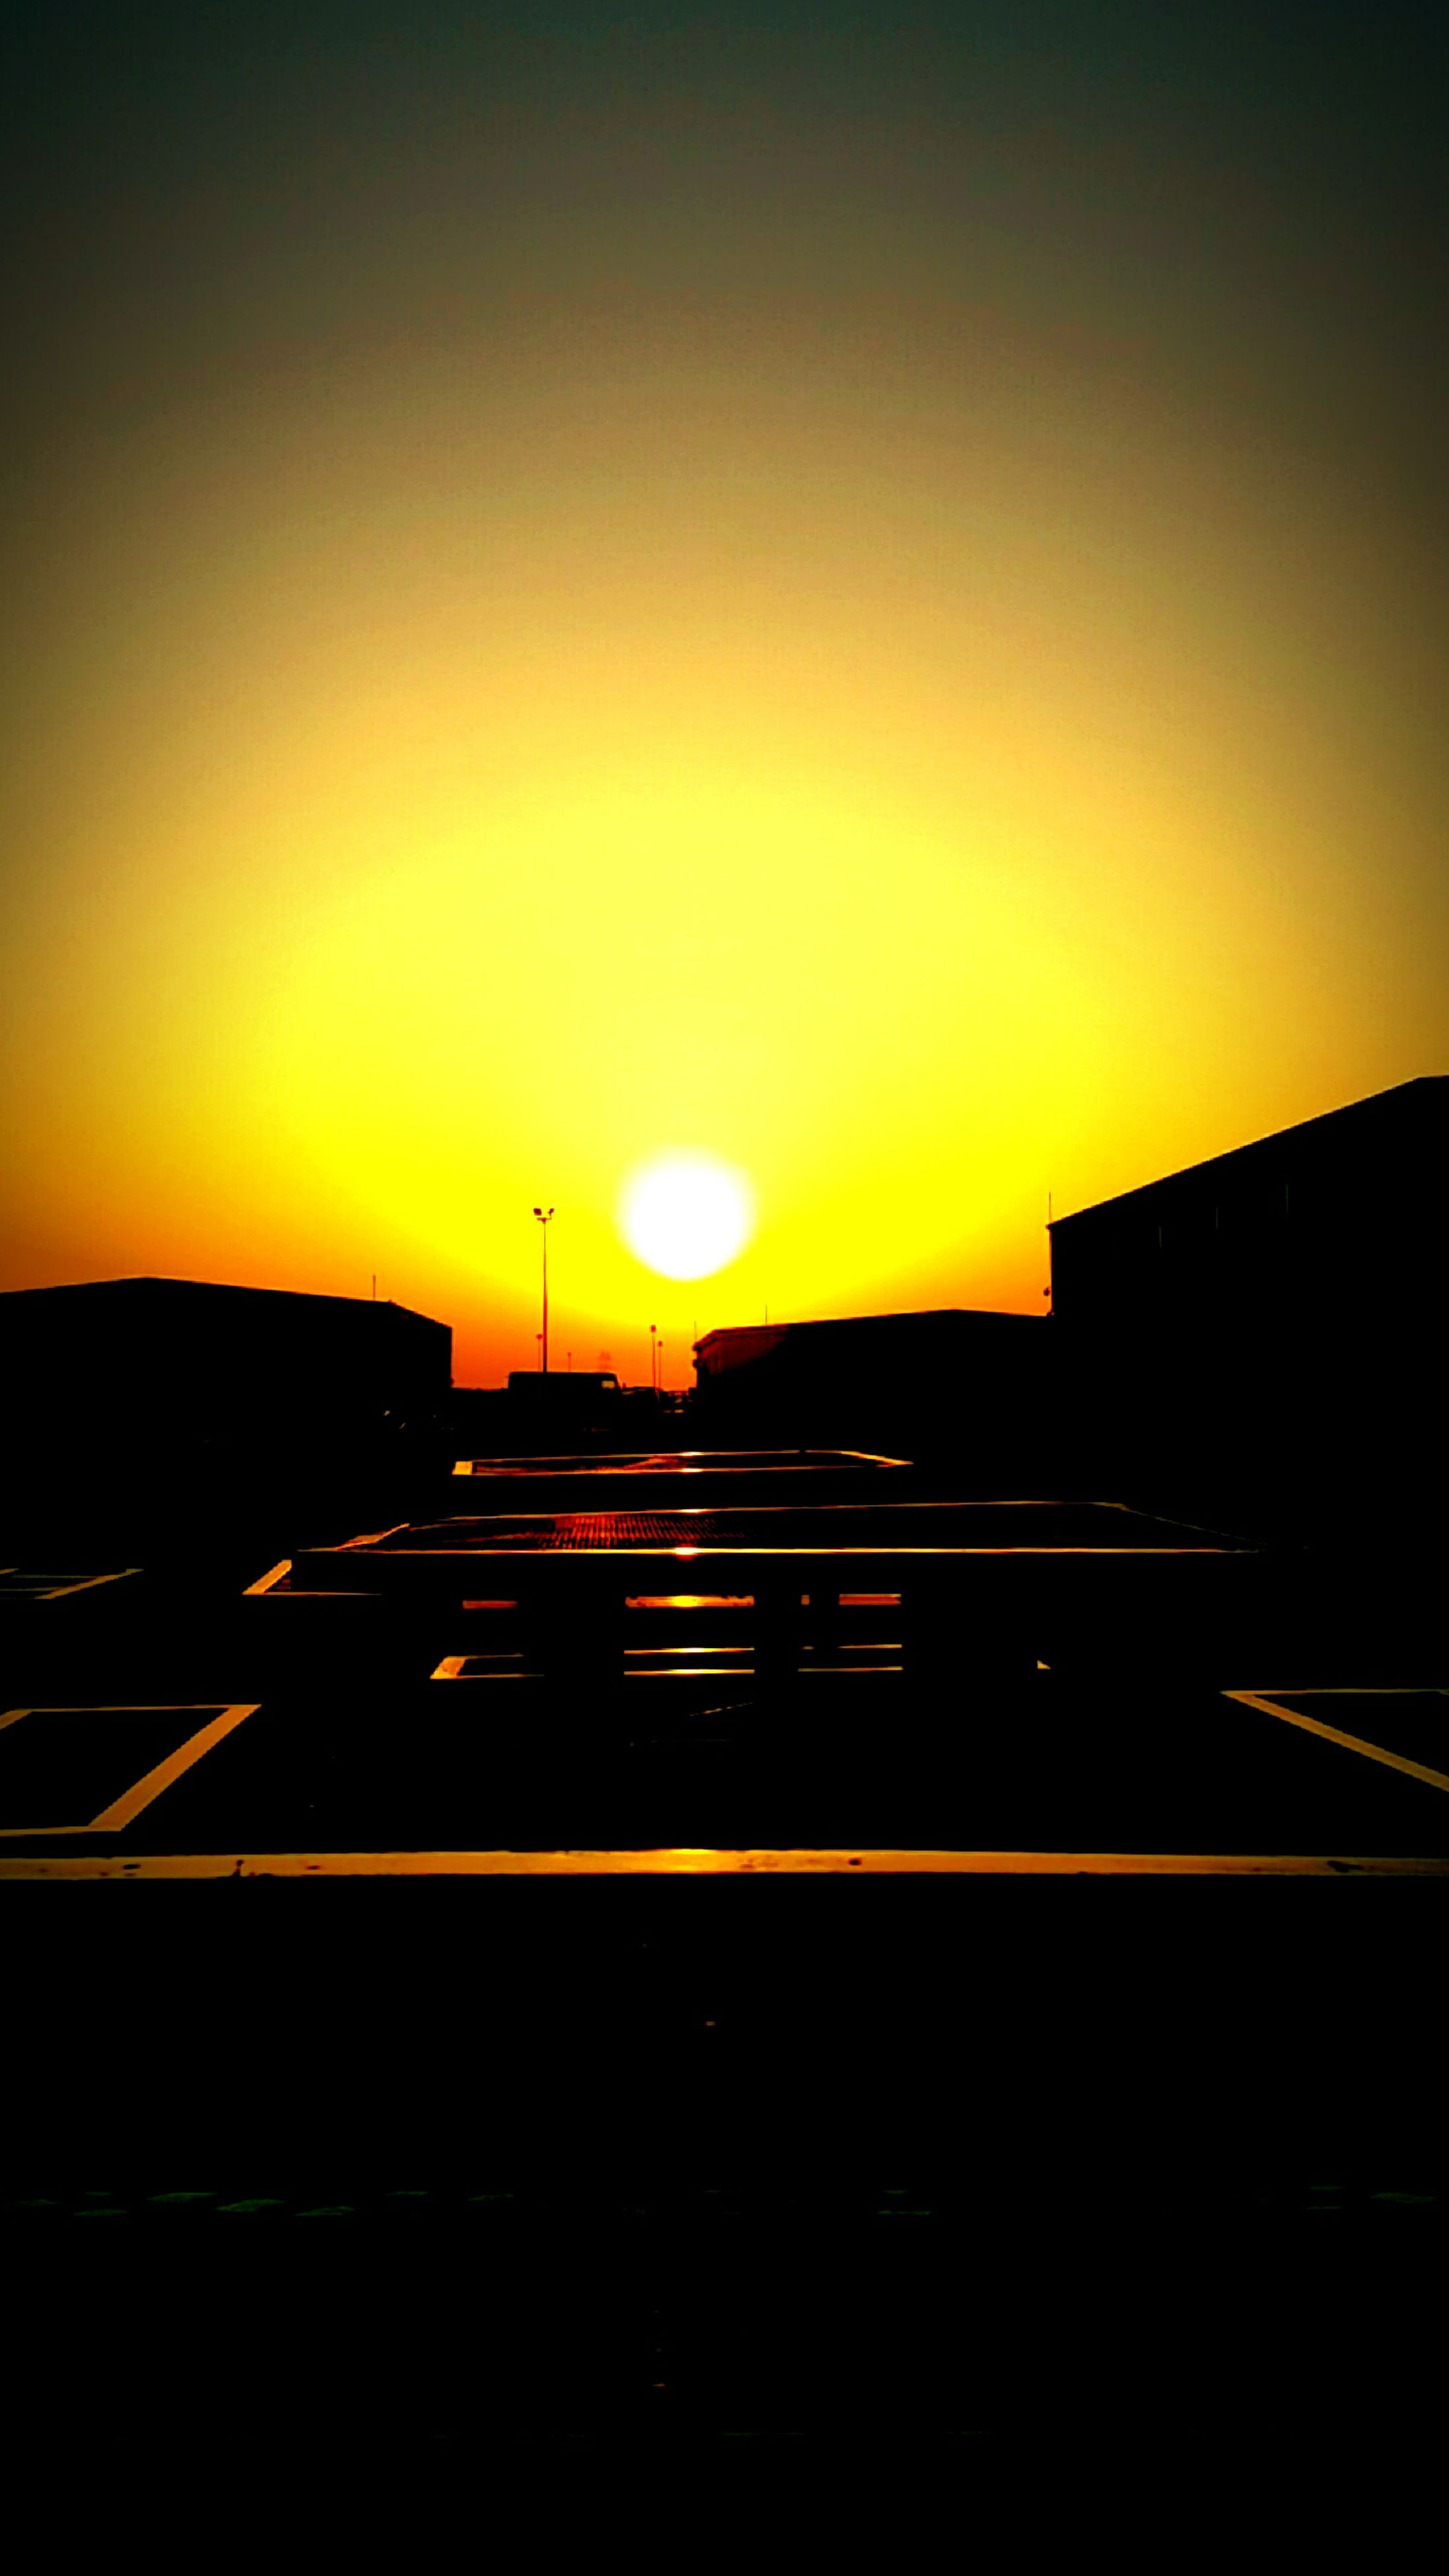 sunset, orange color, silhouette, sun, transportation, copy space, clear sky, sky, sunlight, built structure, road, scenics, dark, architecture, car, beauty in nature, building exterior, nature, outdoors, no people